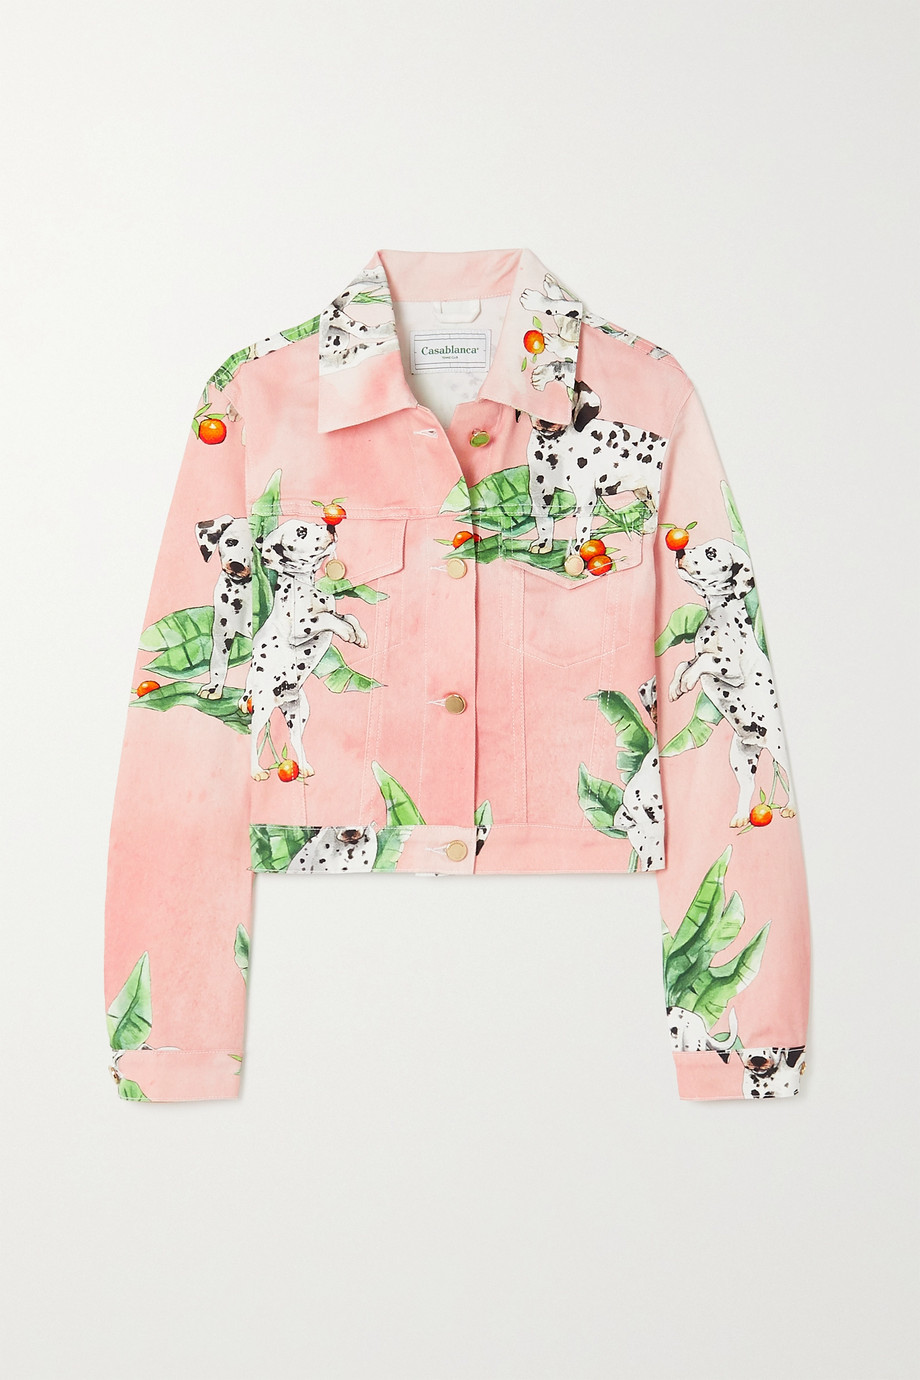 Casablanca Printed denim jacket